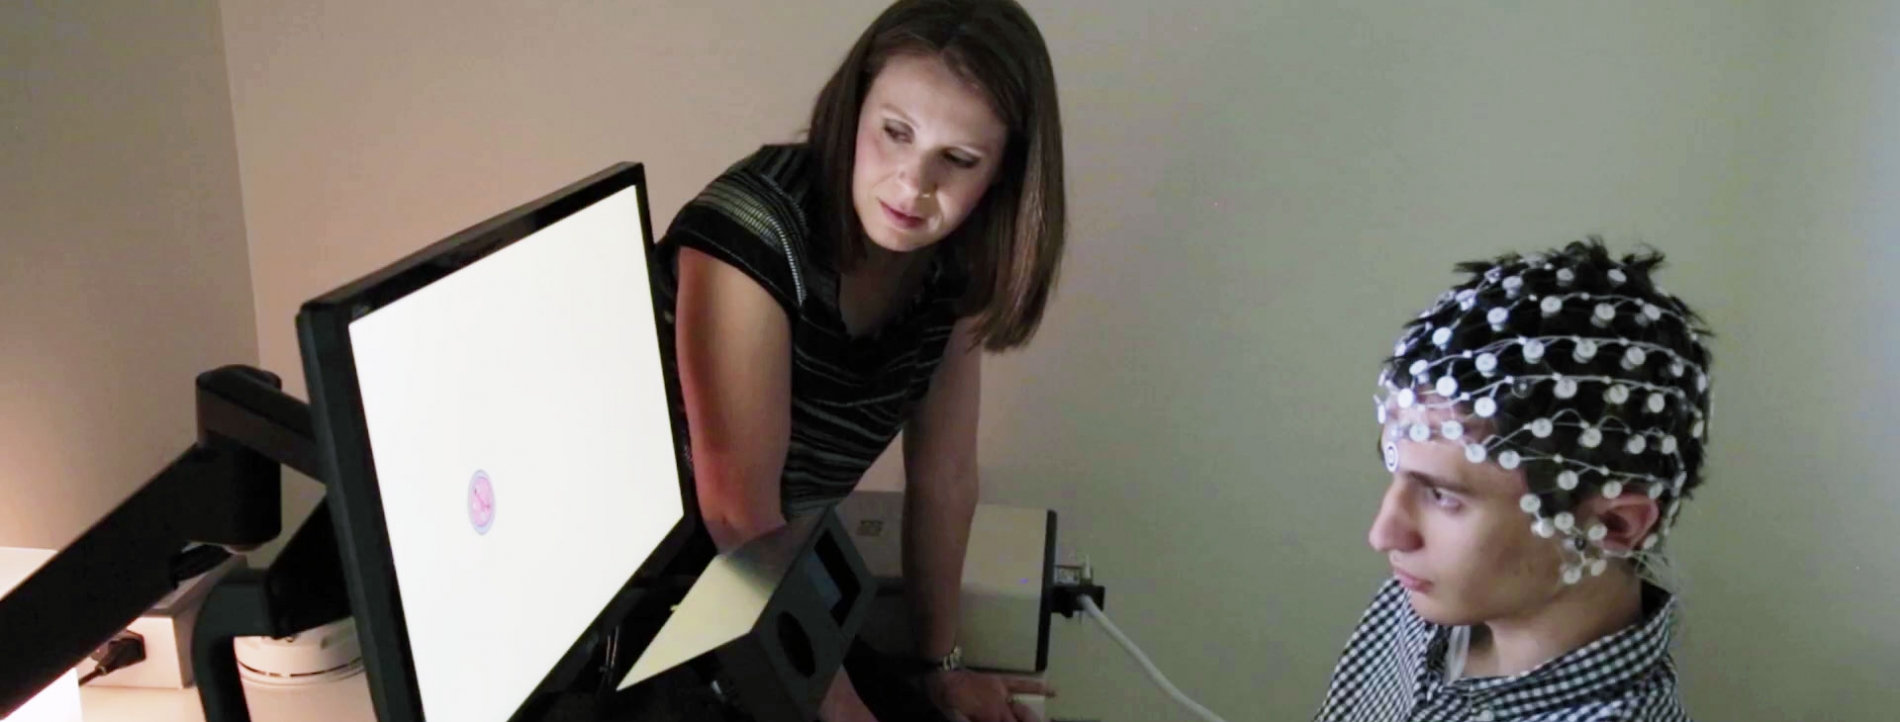 Autism researcher and patient looking at a screen.